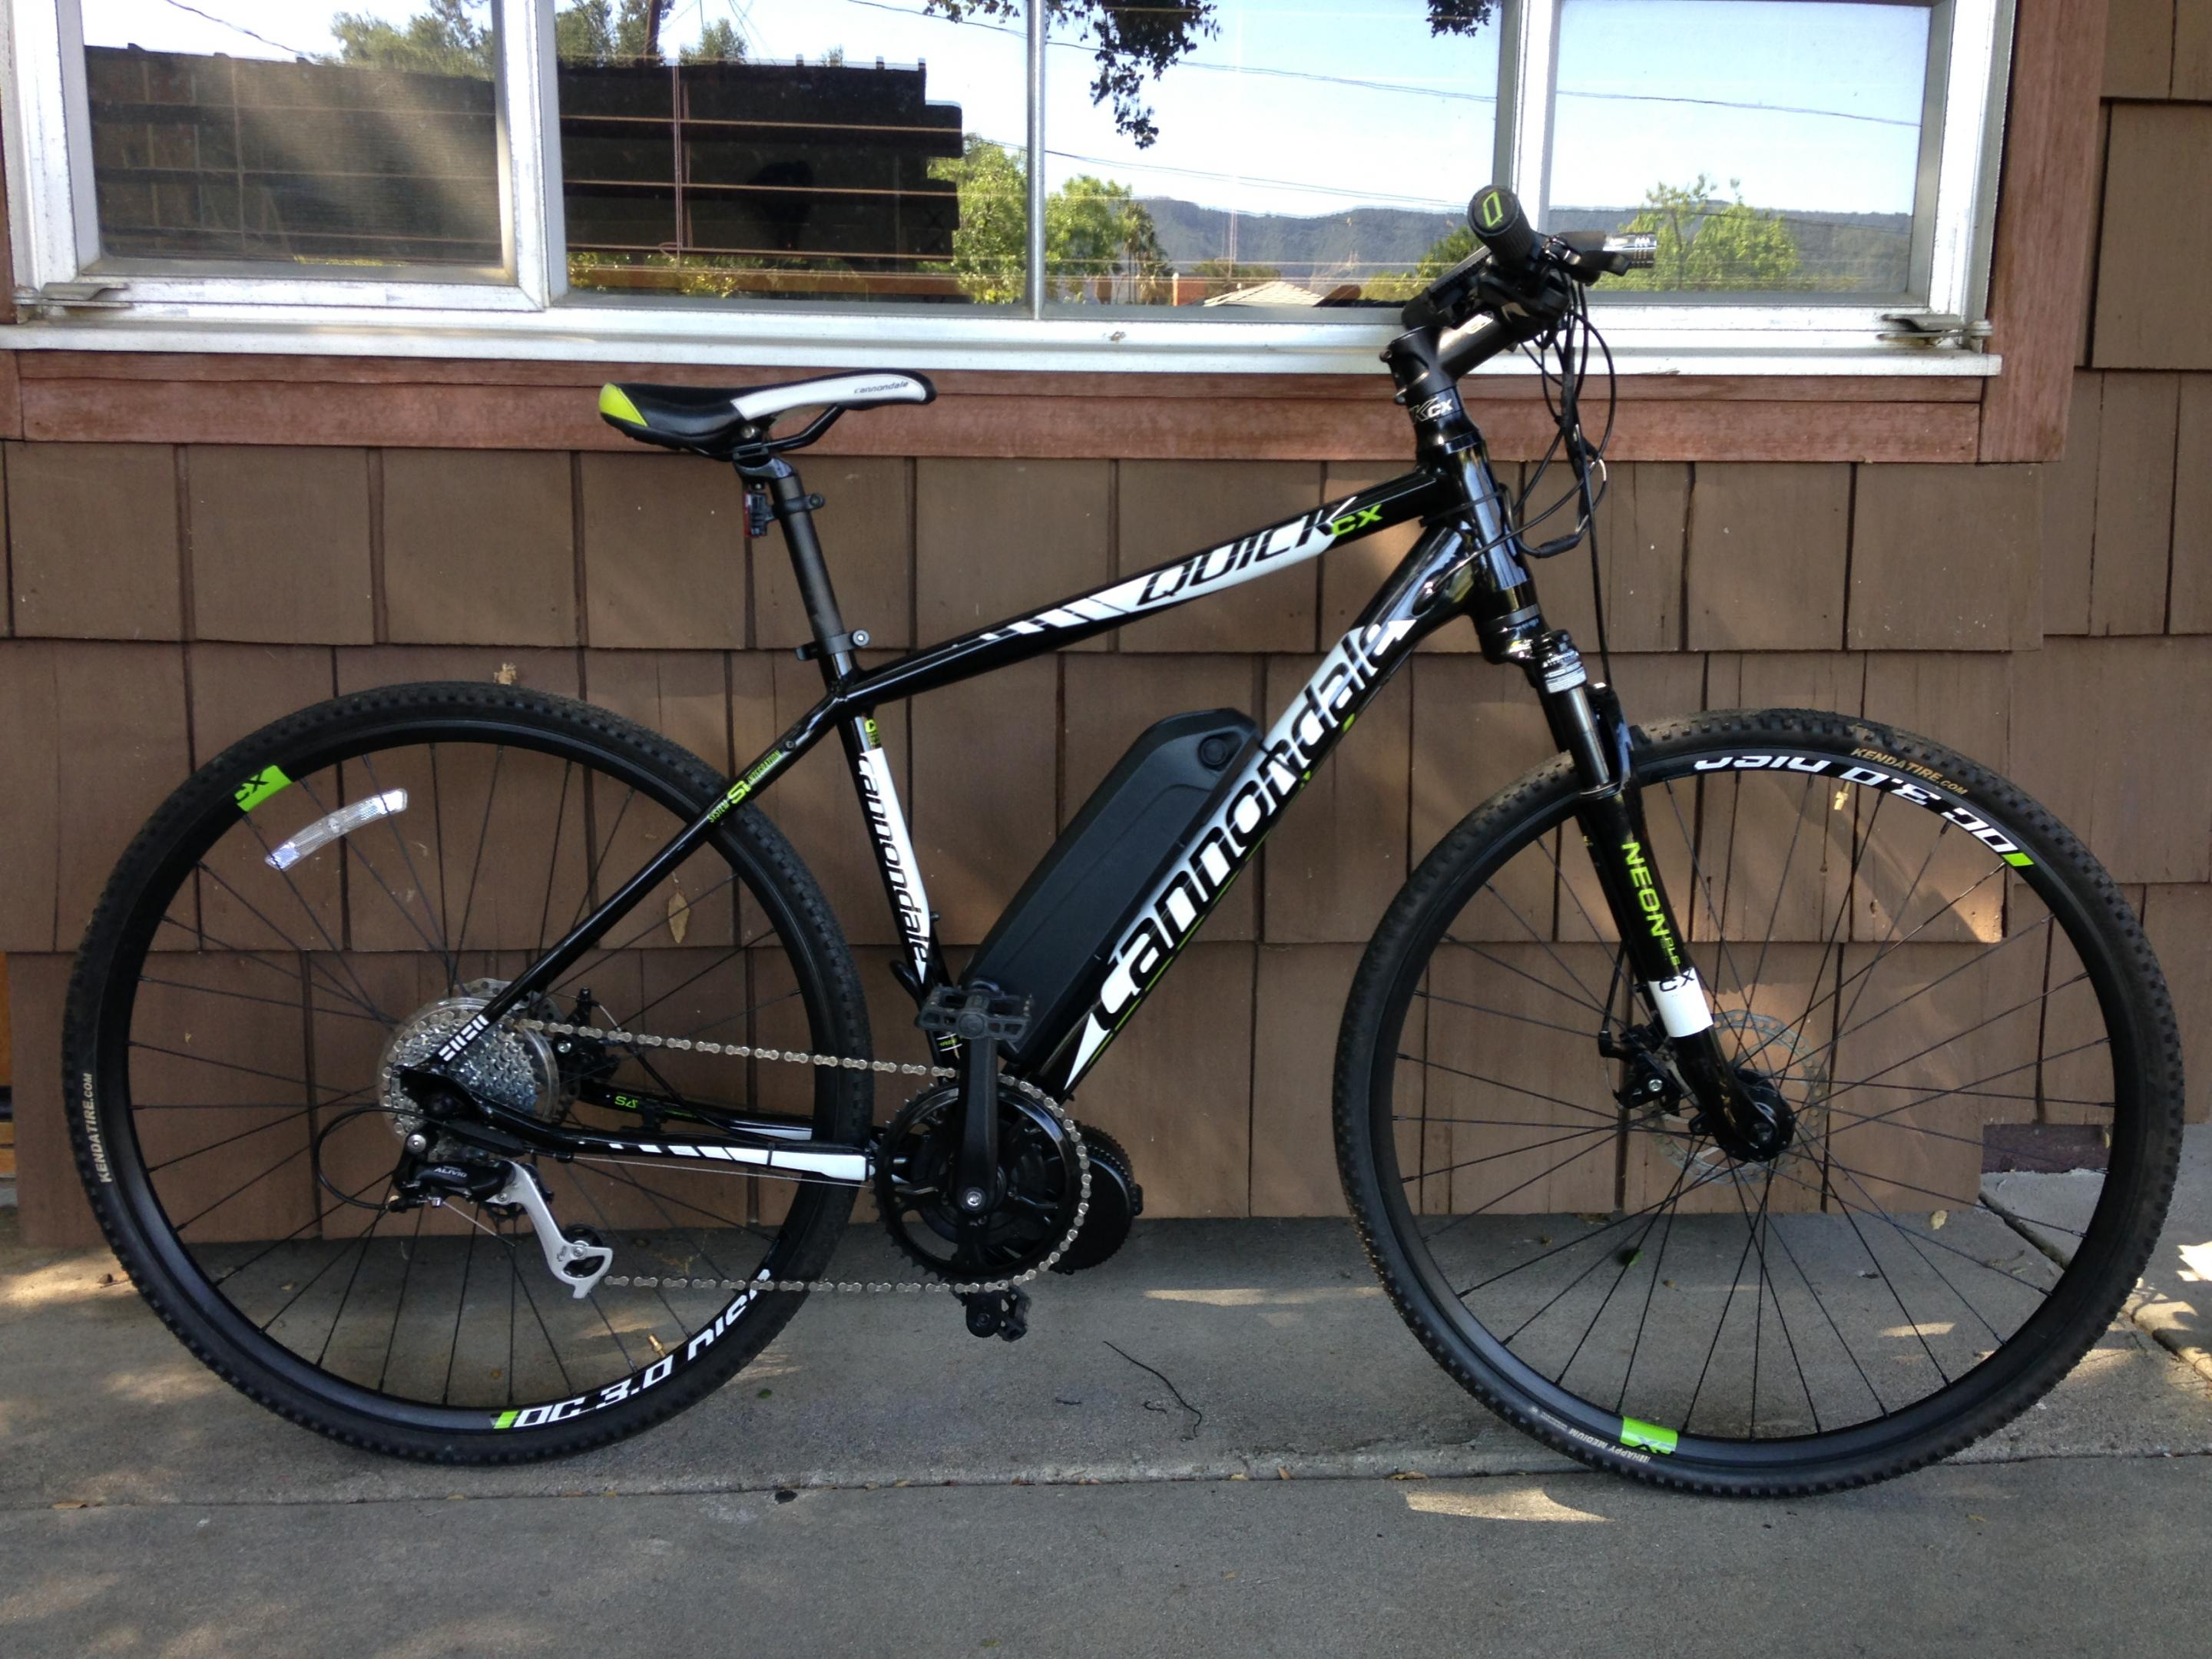 Bikes That Are Compatible With A Bbshd And Bbso2 Kits